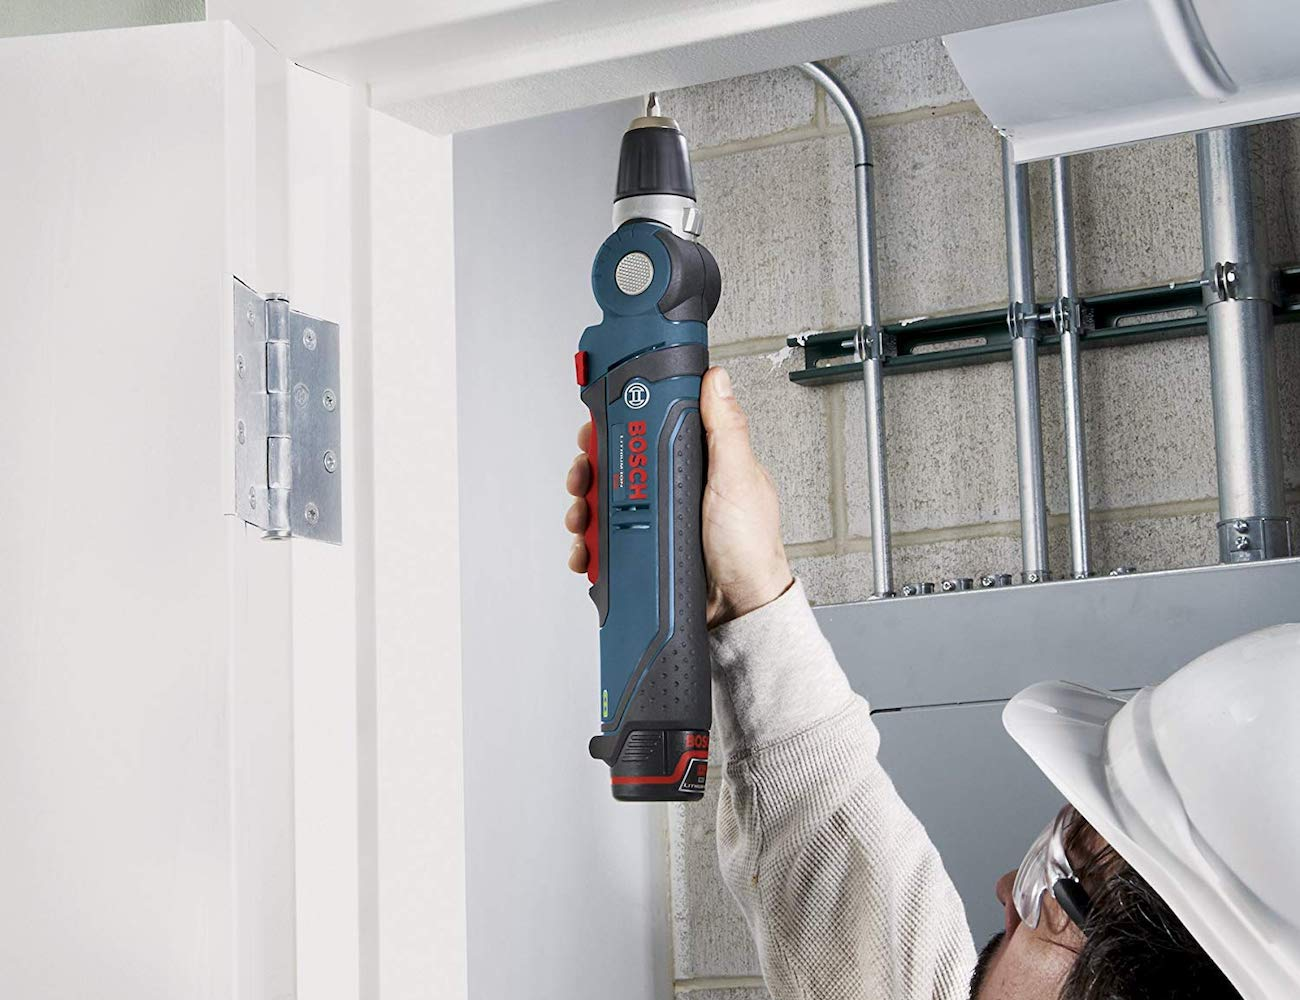 Bosch PS11 Angle Drill Driver articulates up to 180 degrees